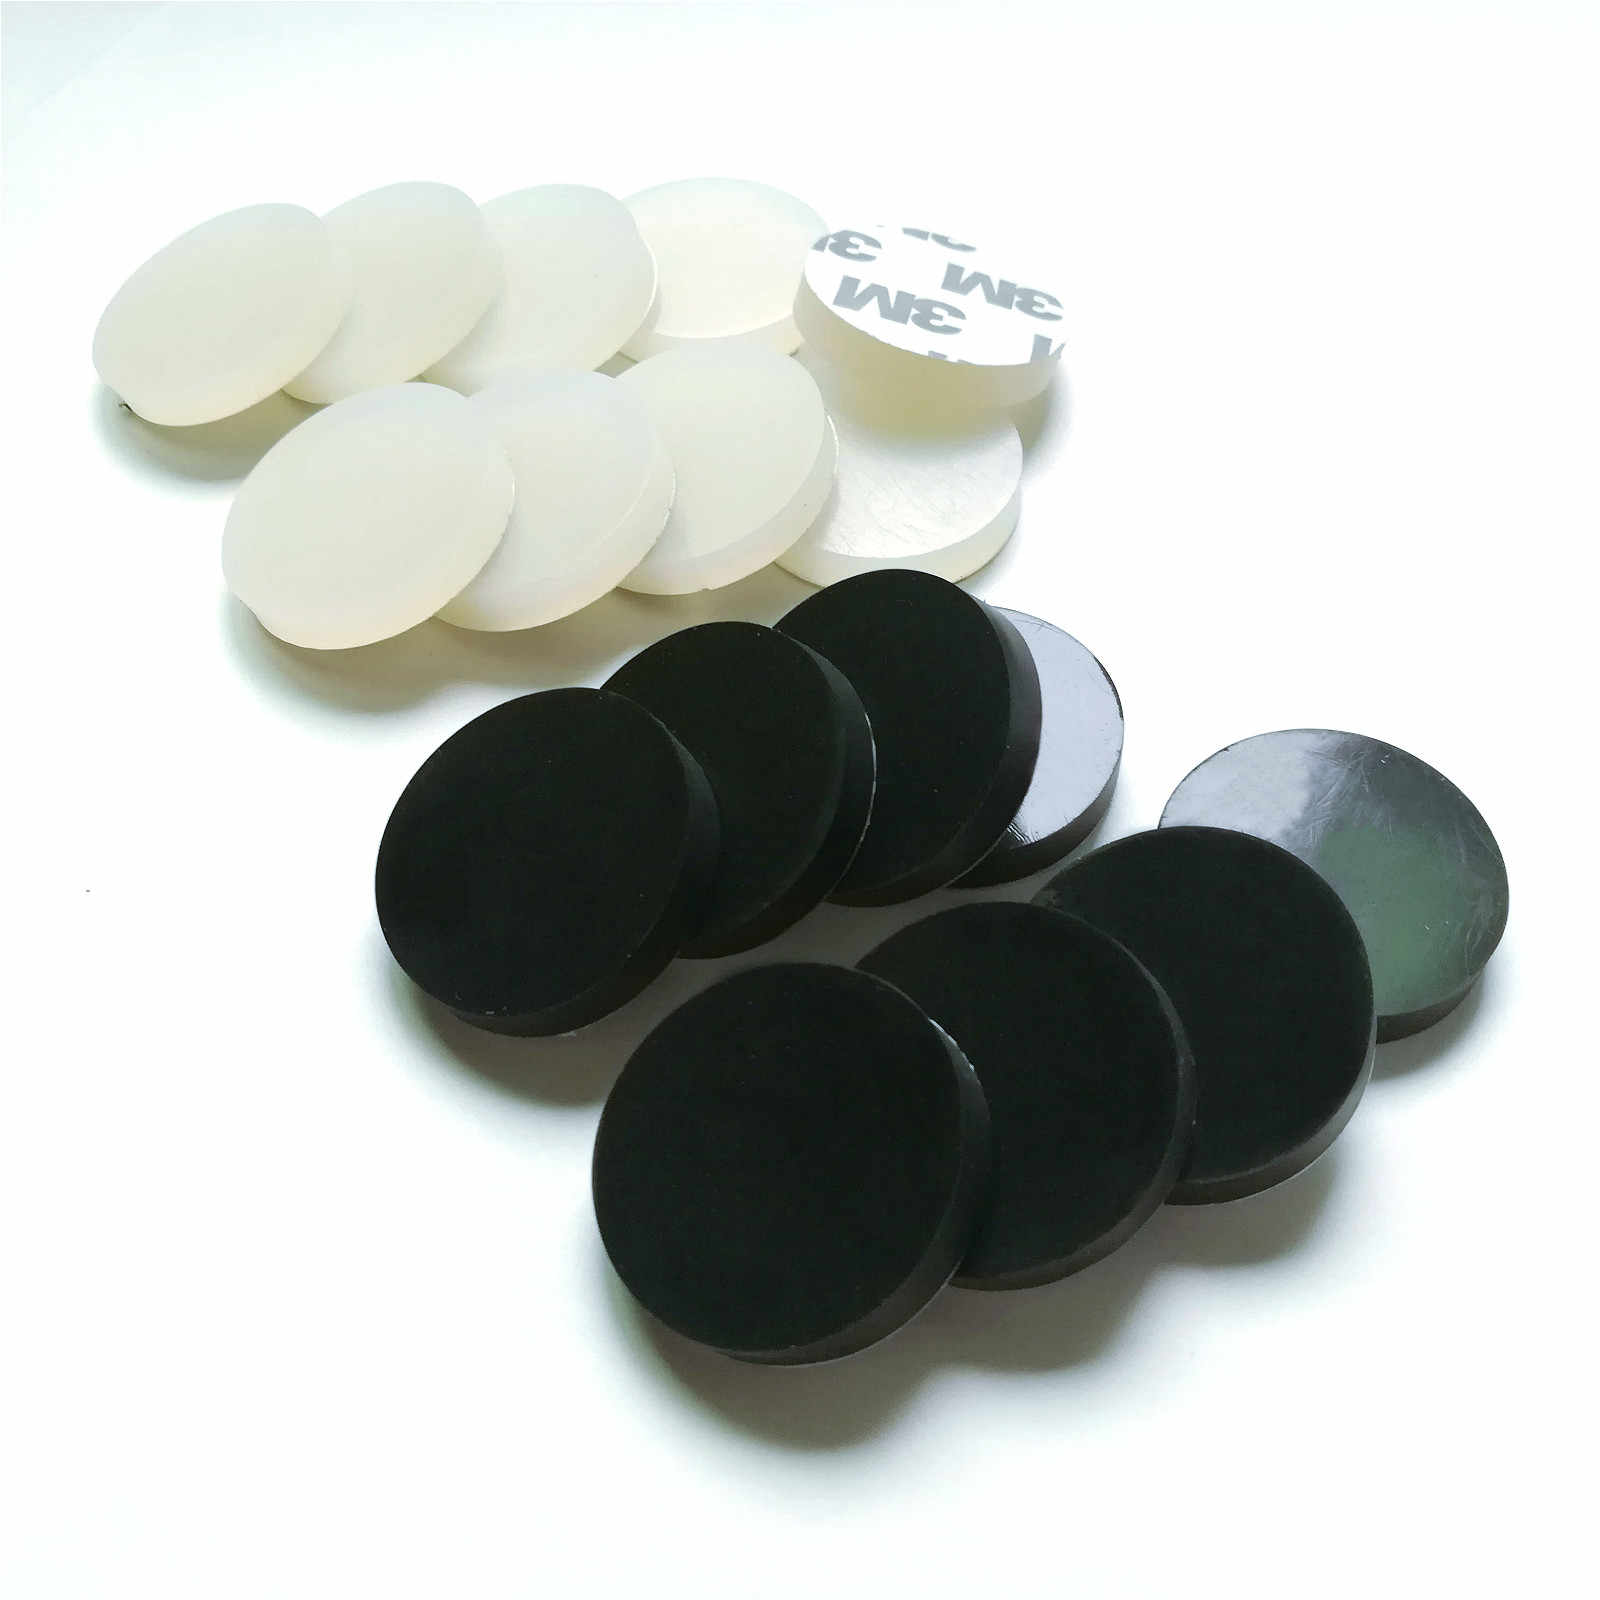 Anti Slip Silicone Rubber Pads 30mm Round Furniture Feet Mat White Black Color Self Adhesive